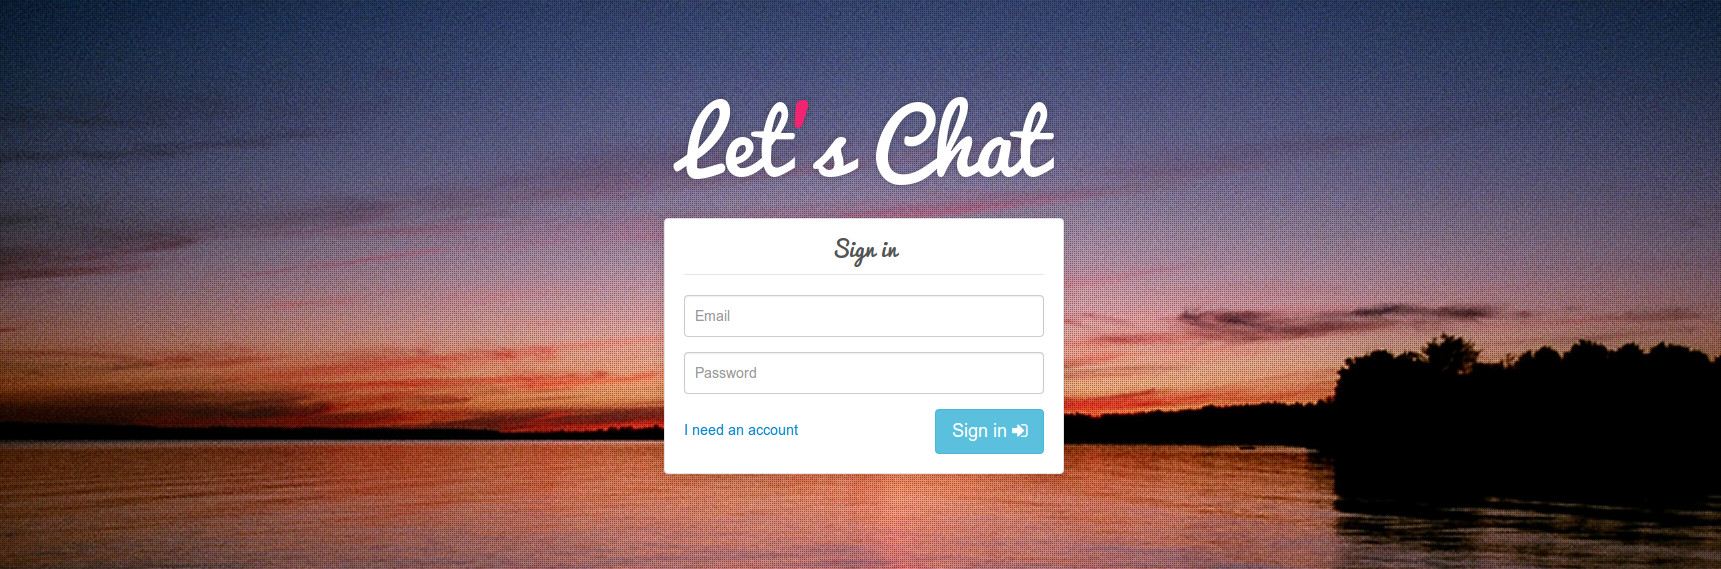 open source chat app